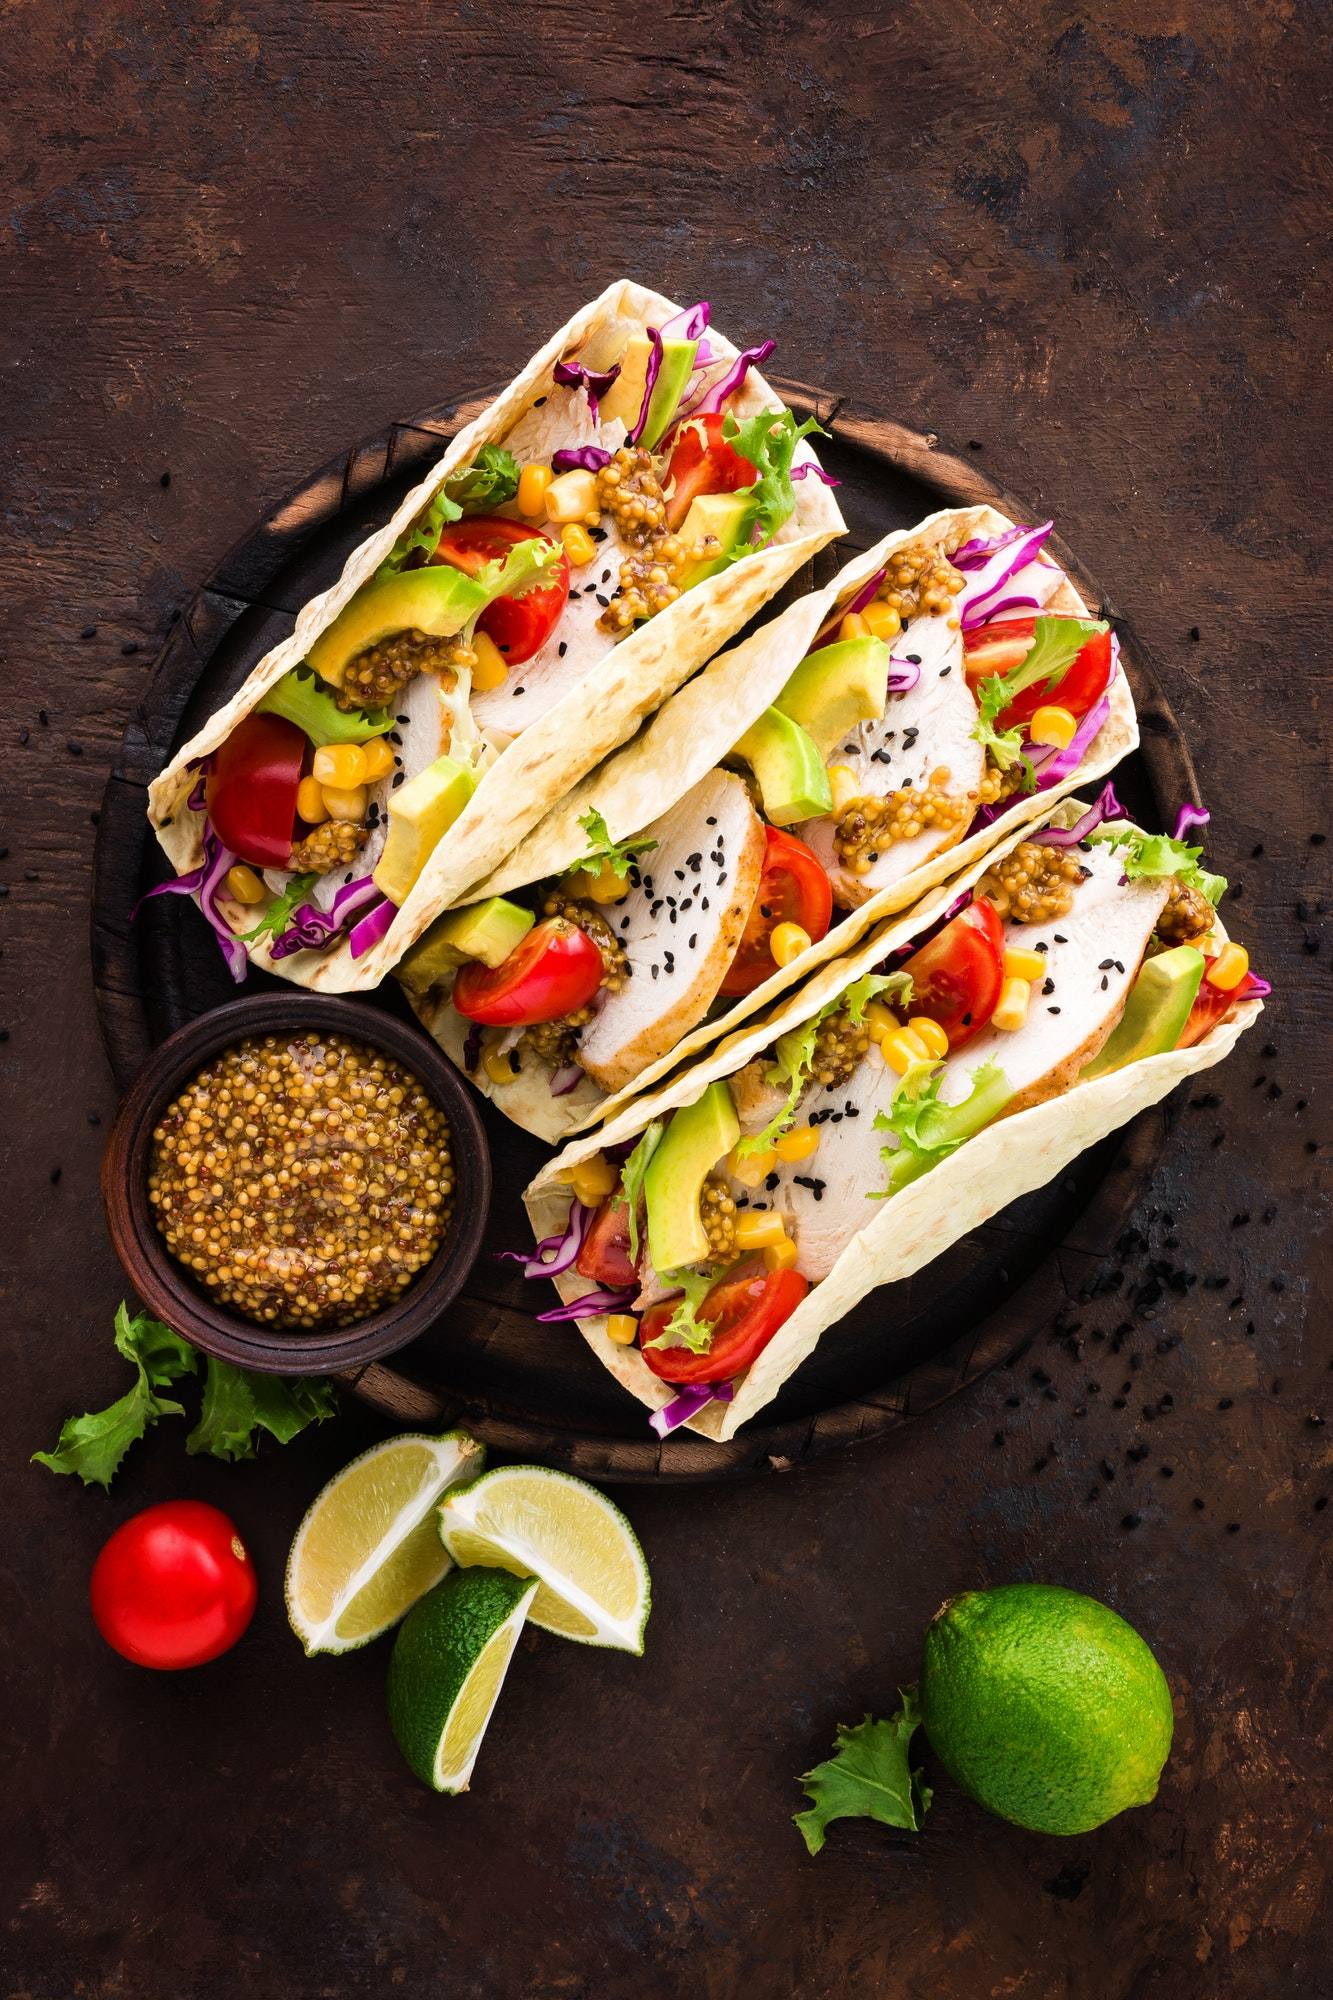 Mexican tacos with chicken meat, vegetables and fresh greens